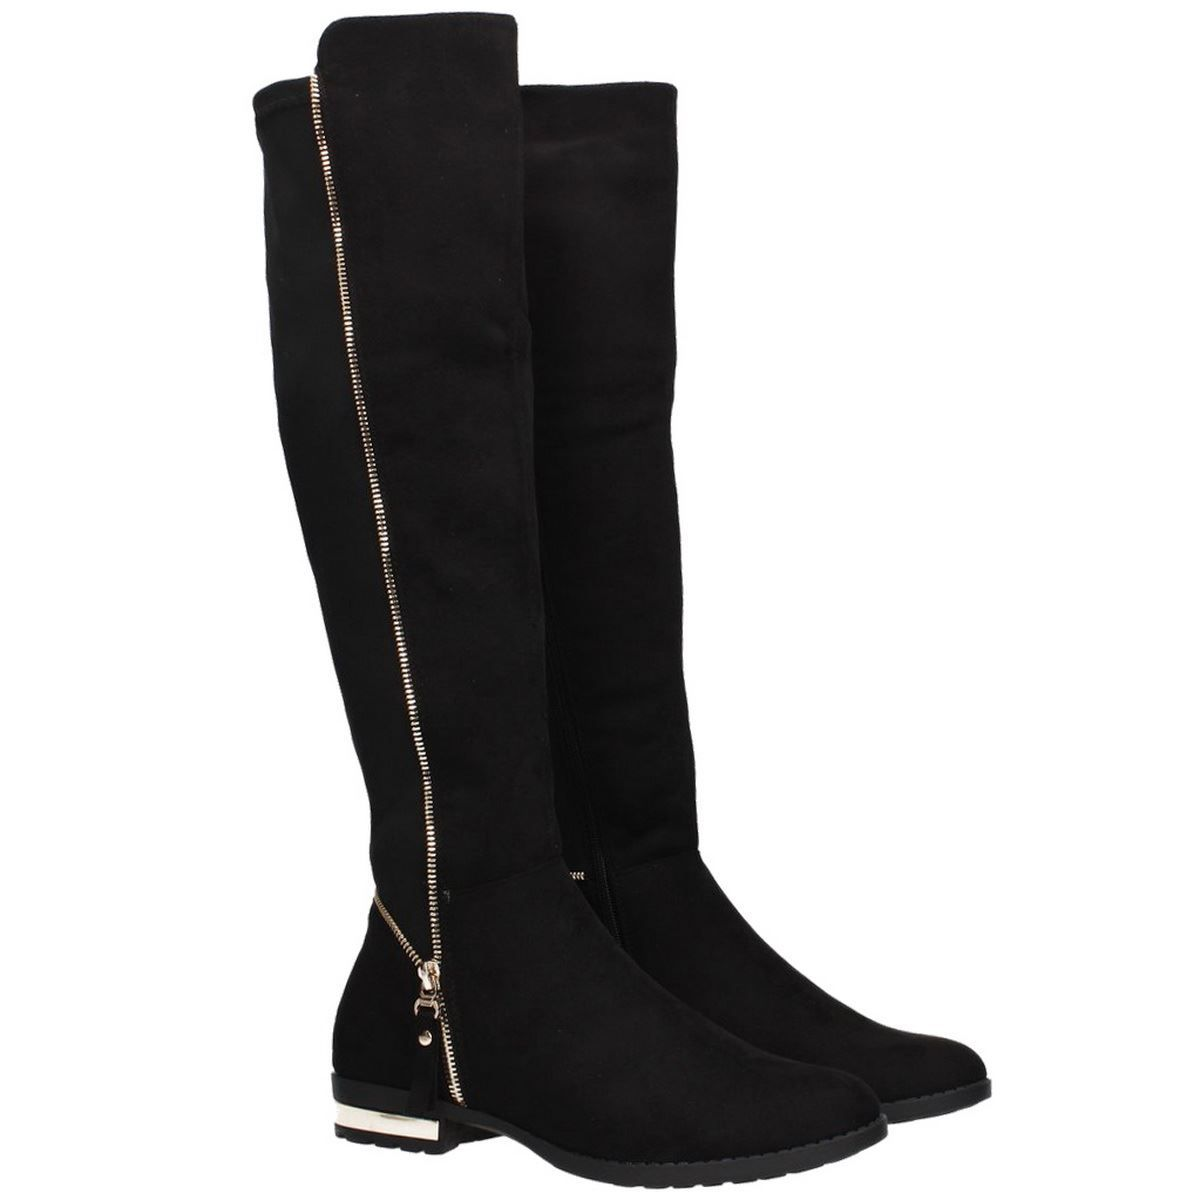 WOMENS LADIES NEW STRETCH OVER THE KNEE BOOT GOLD ZIP LOW HEEL SHOES BOOTS SIZE